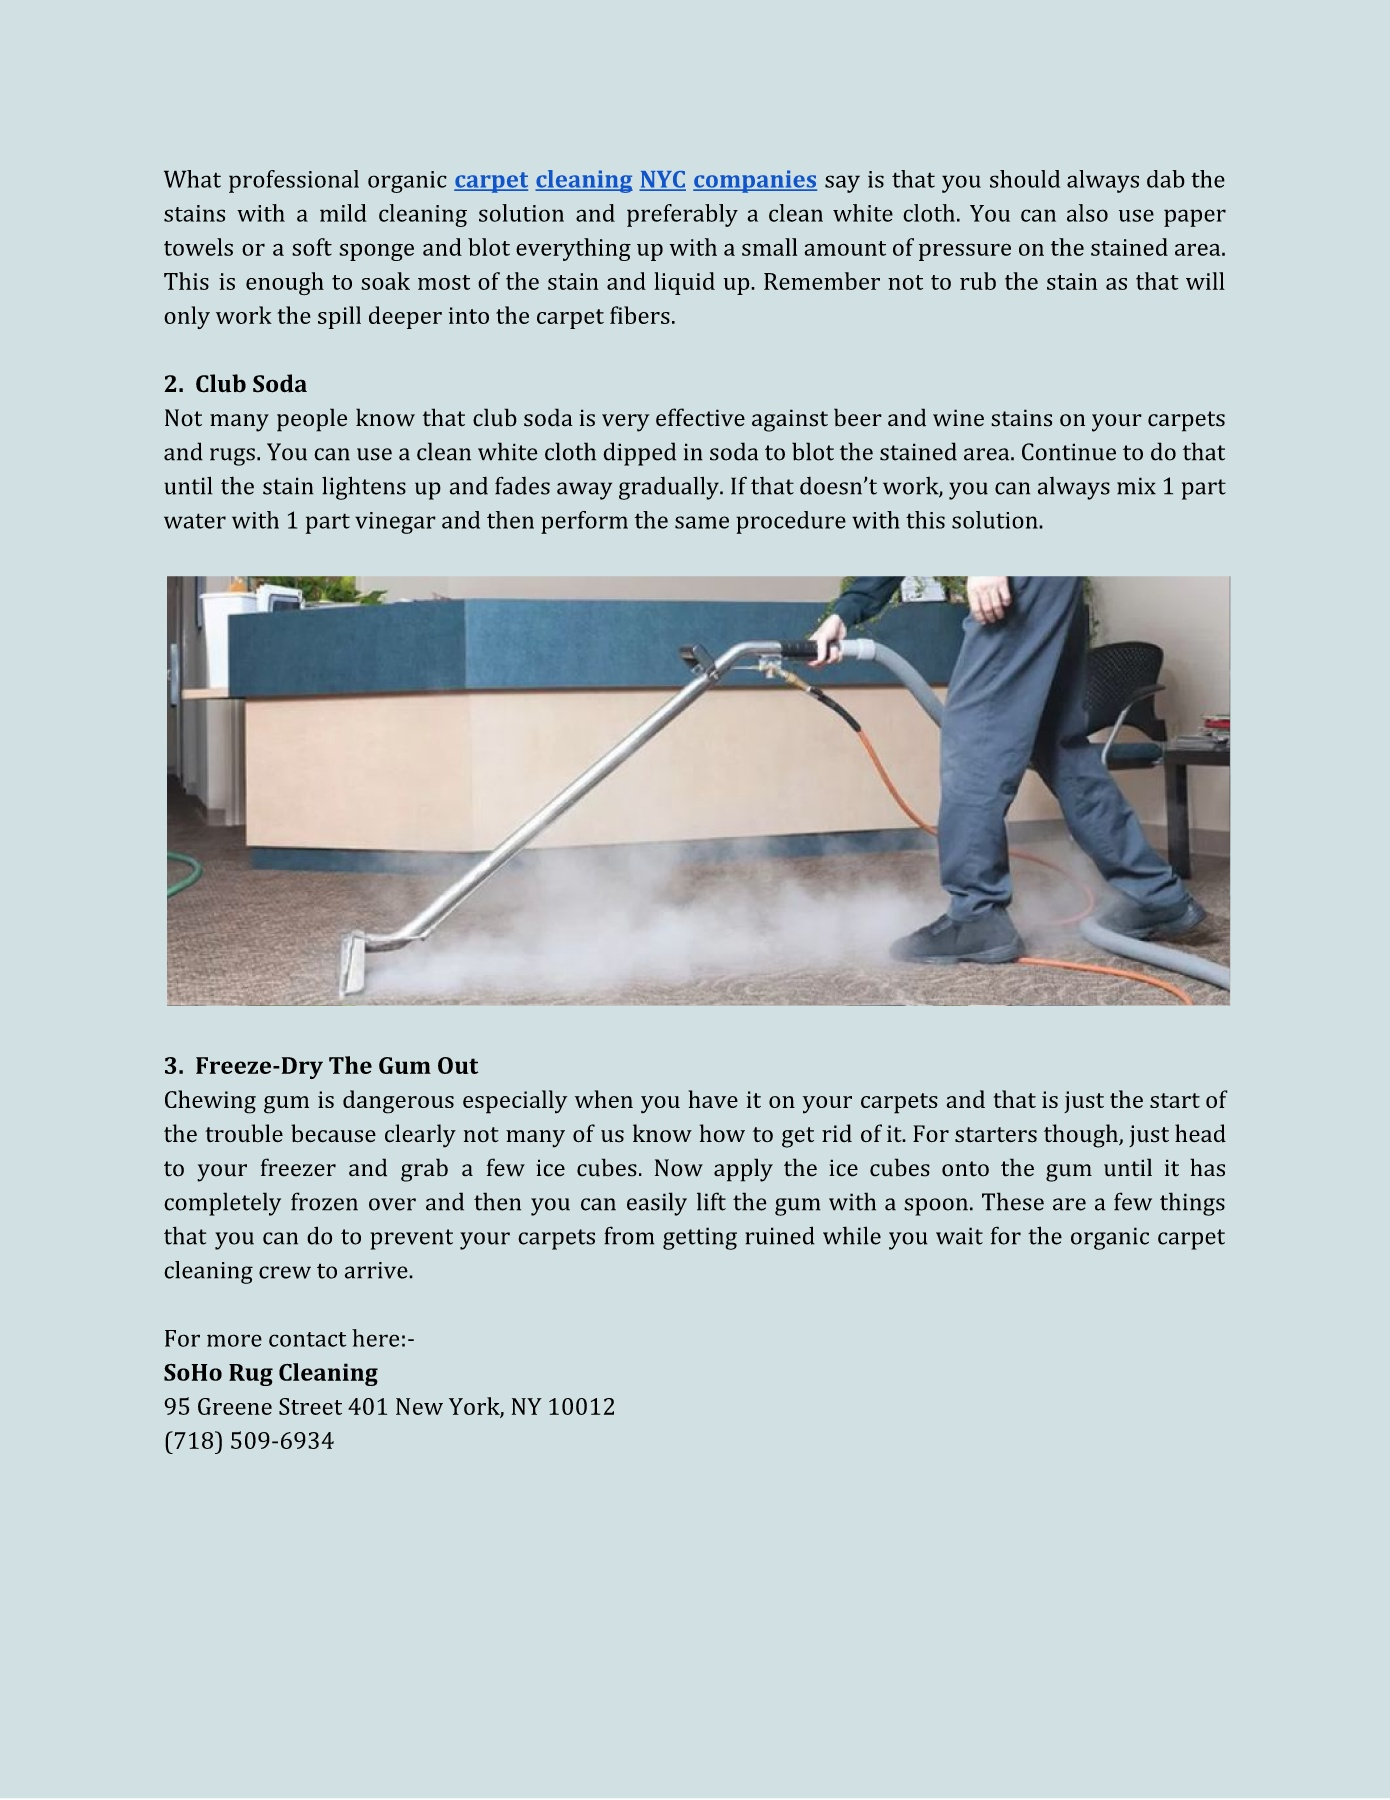 Benefits of Organic Carpet Cleaning NYC